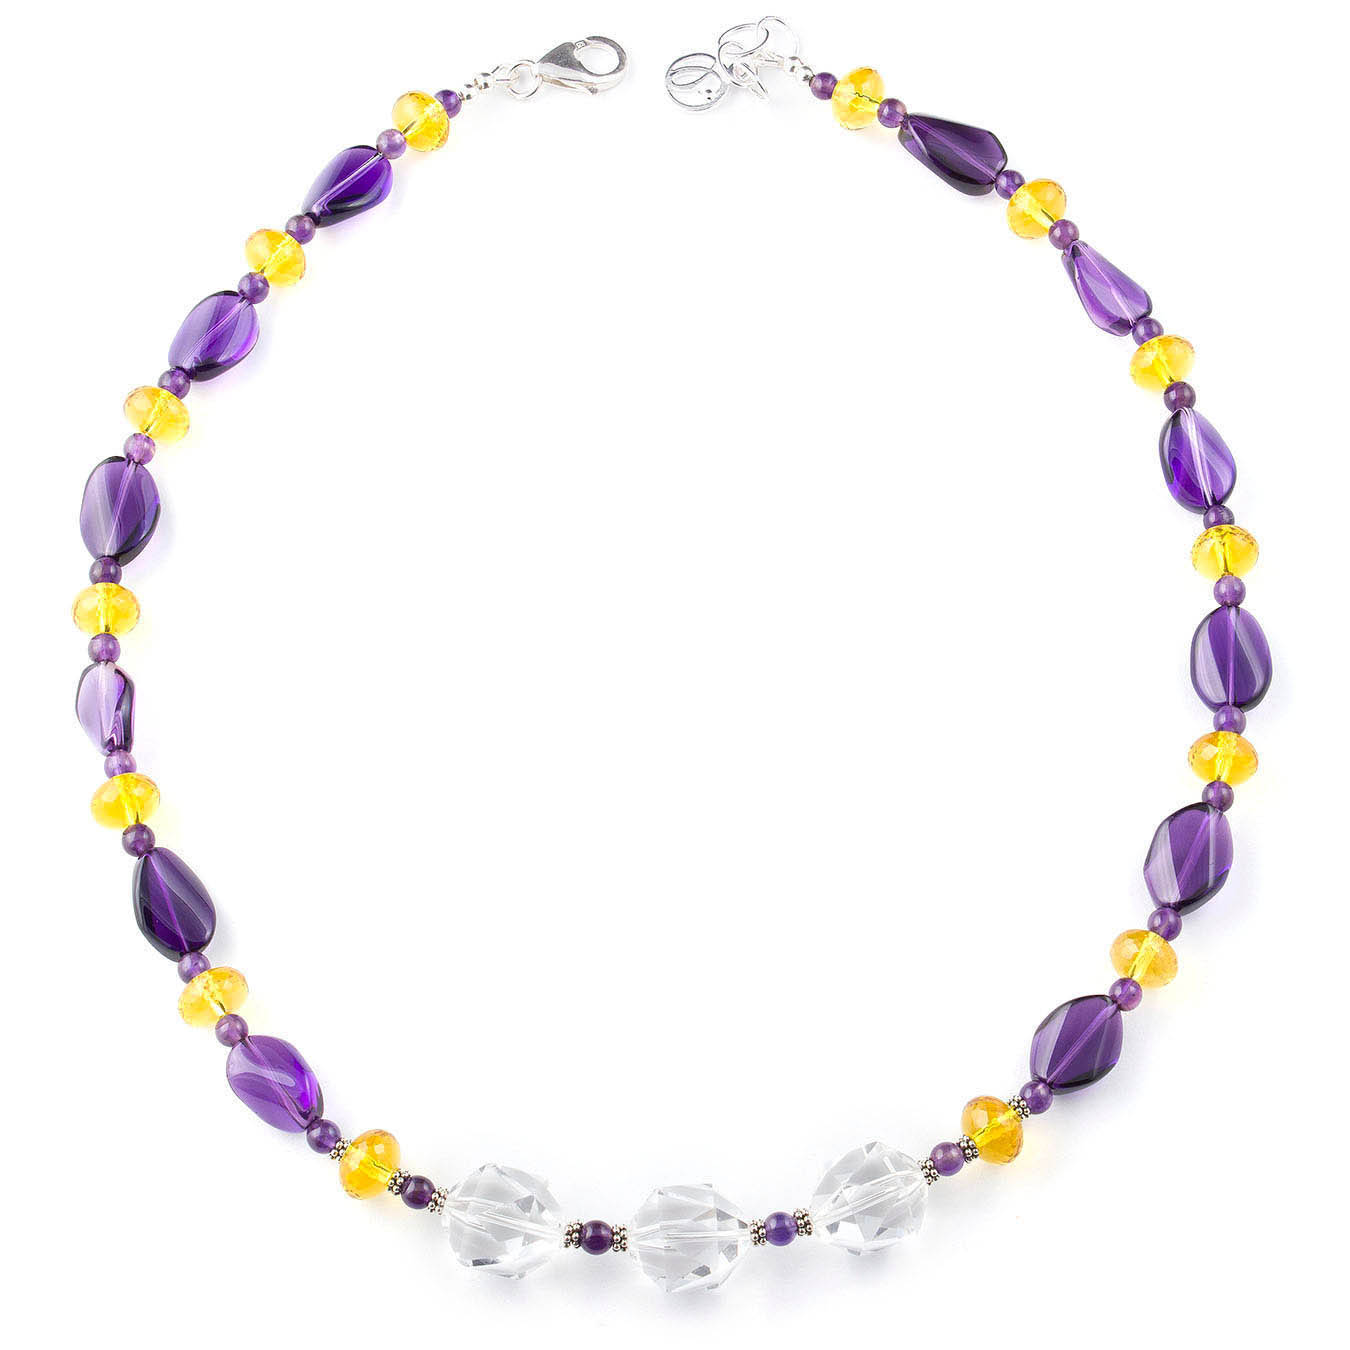 Multi-stone beaded jewelry November birthstone necklace